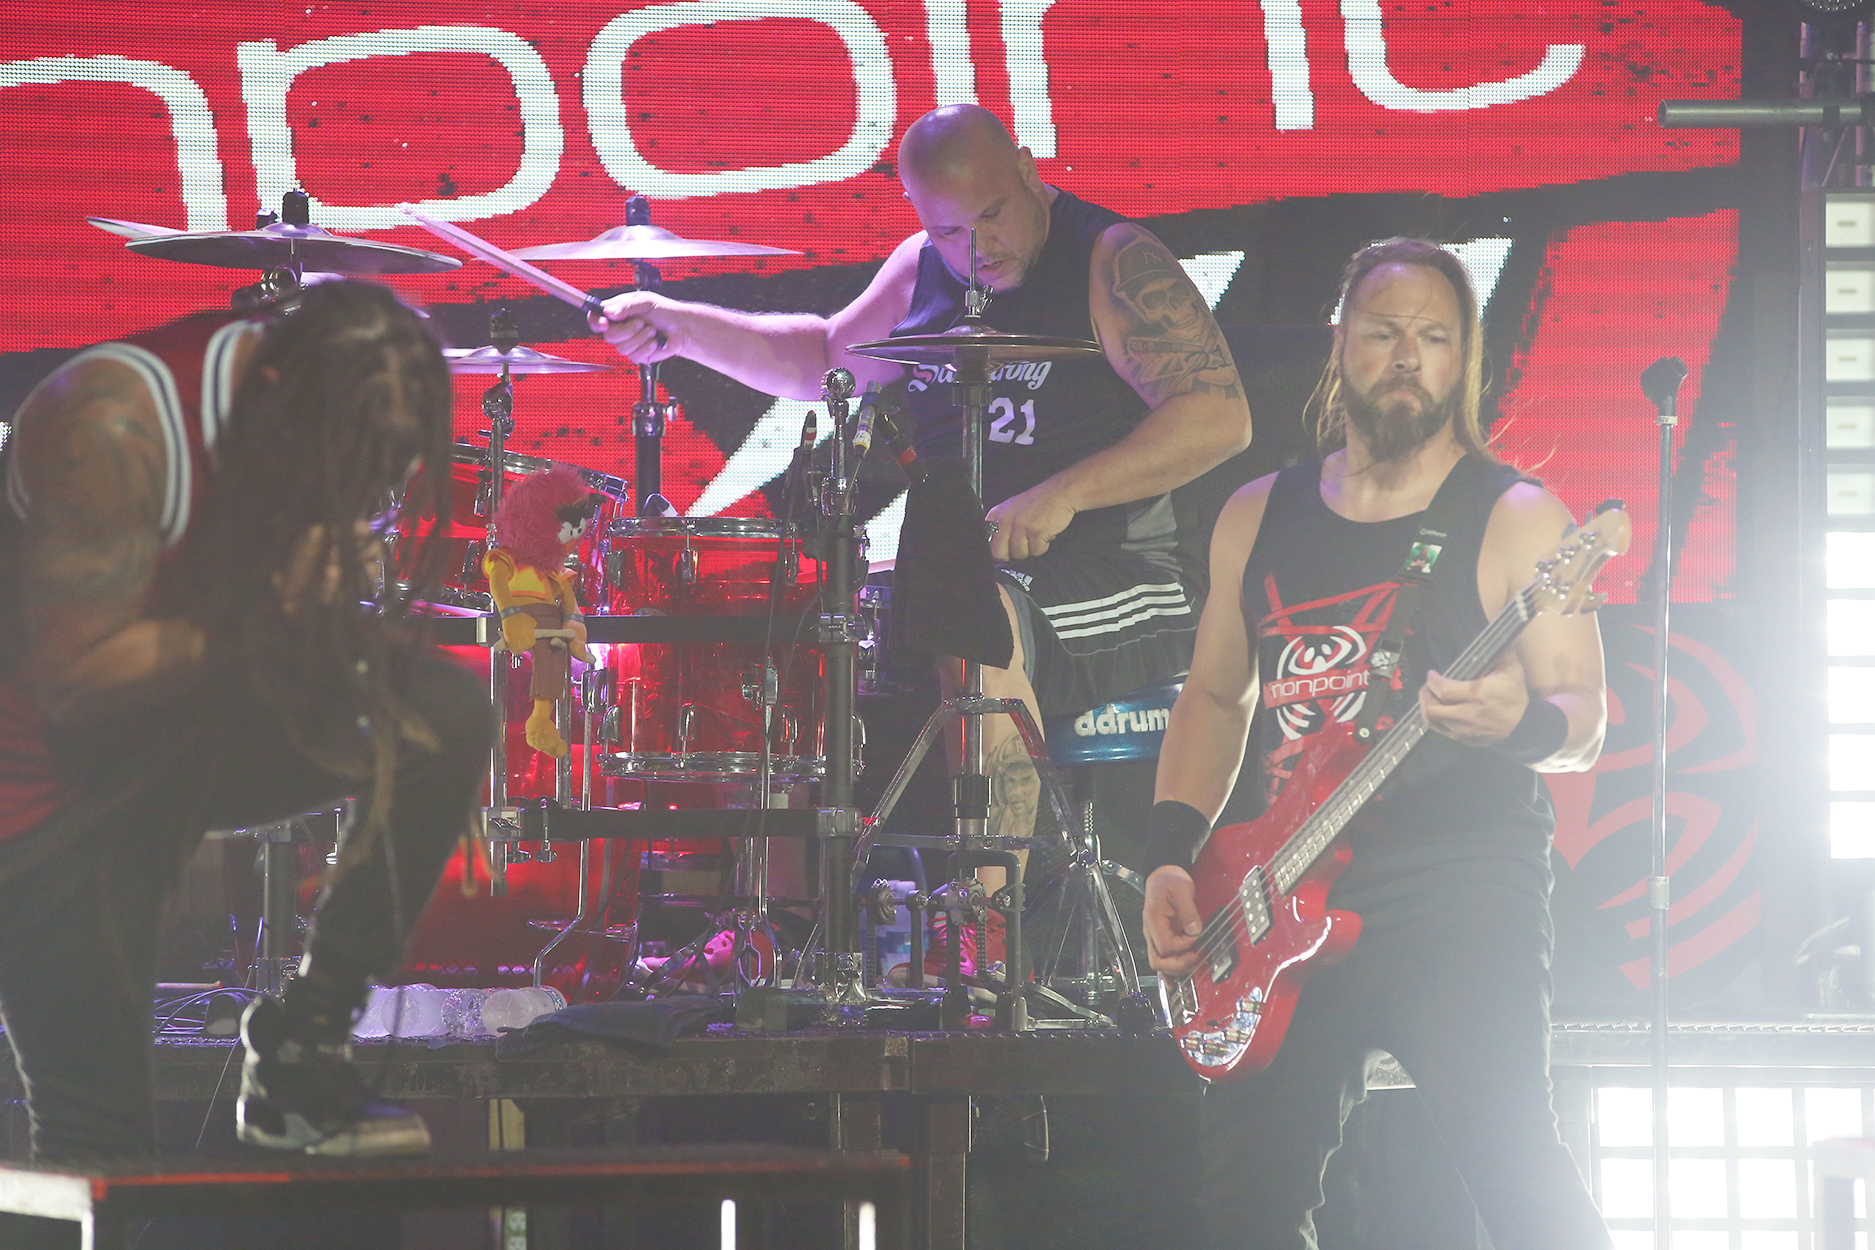 Nonpoint Homecoming Concert in Ft. Lauderdale, Florida